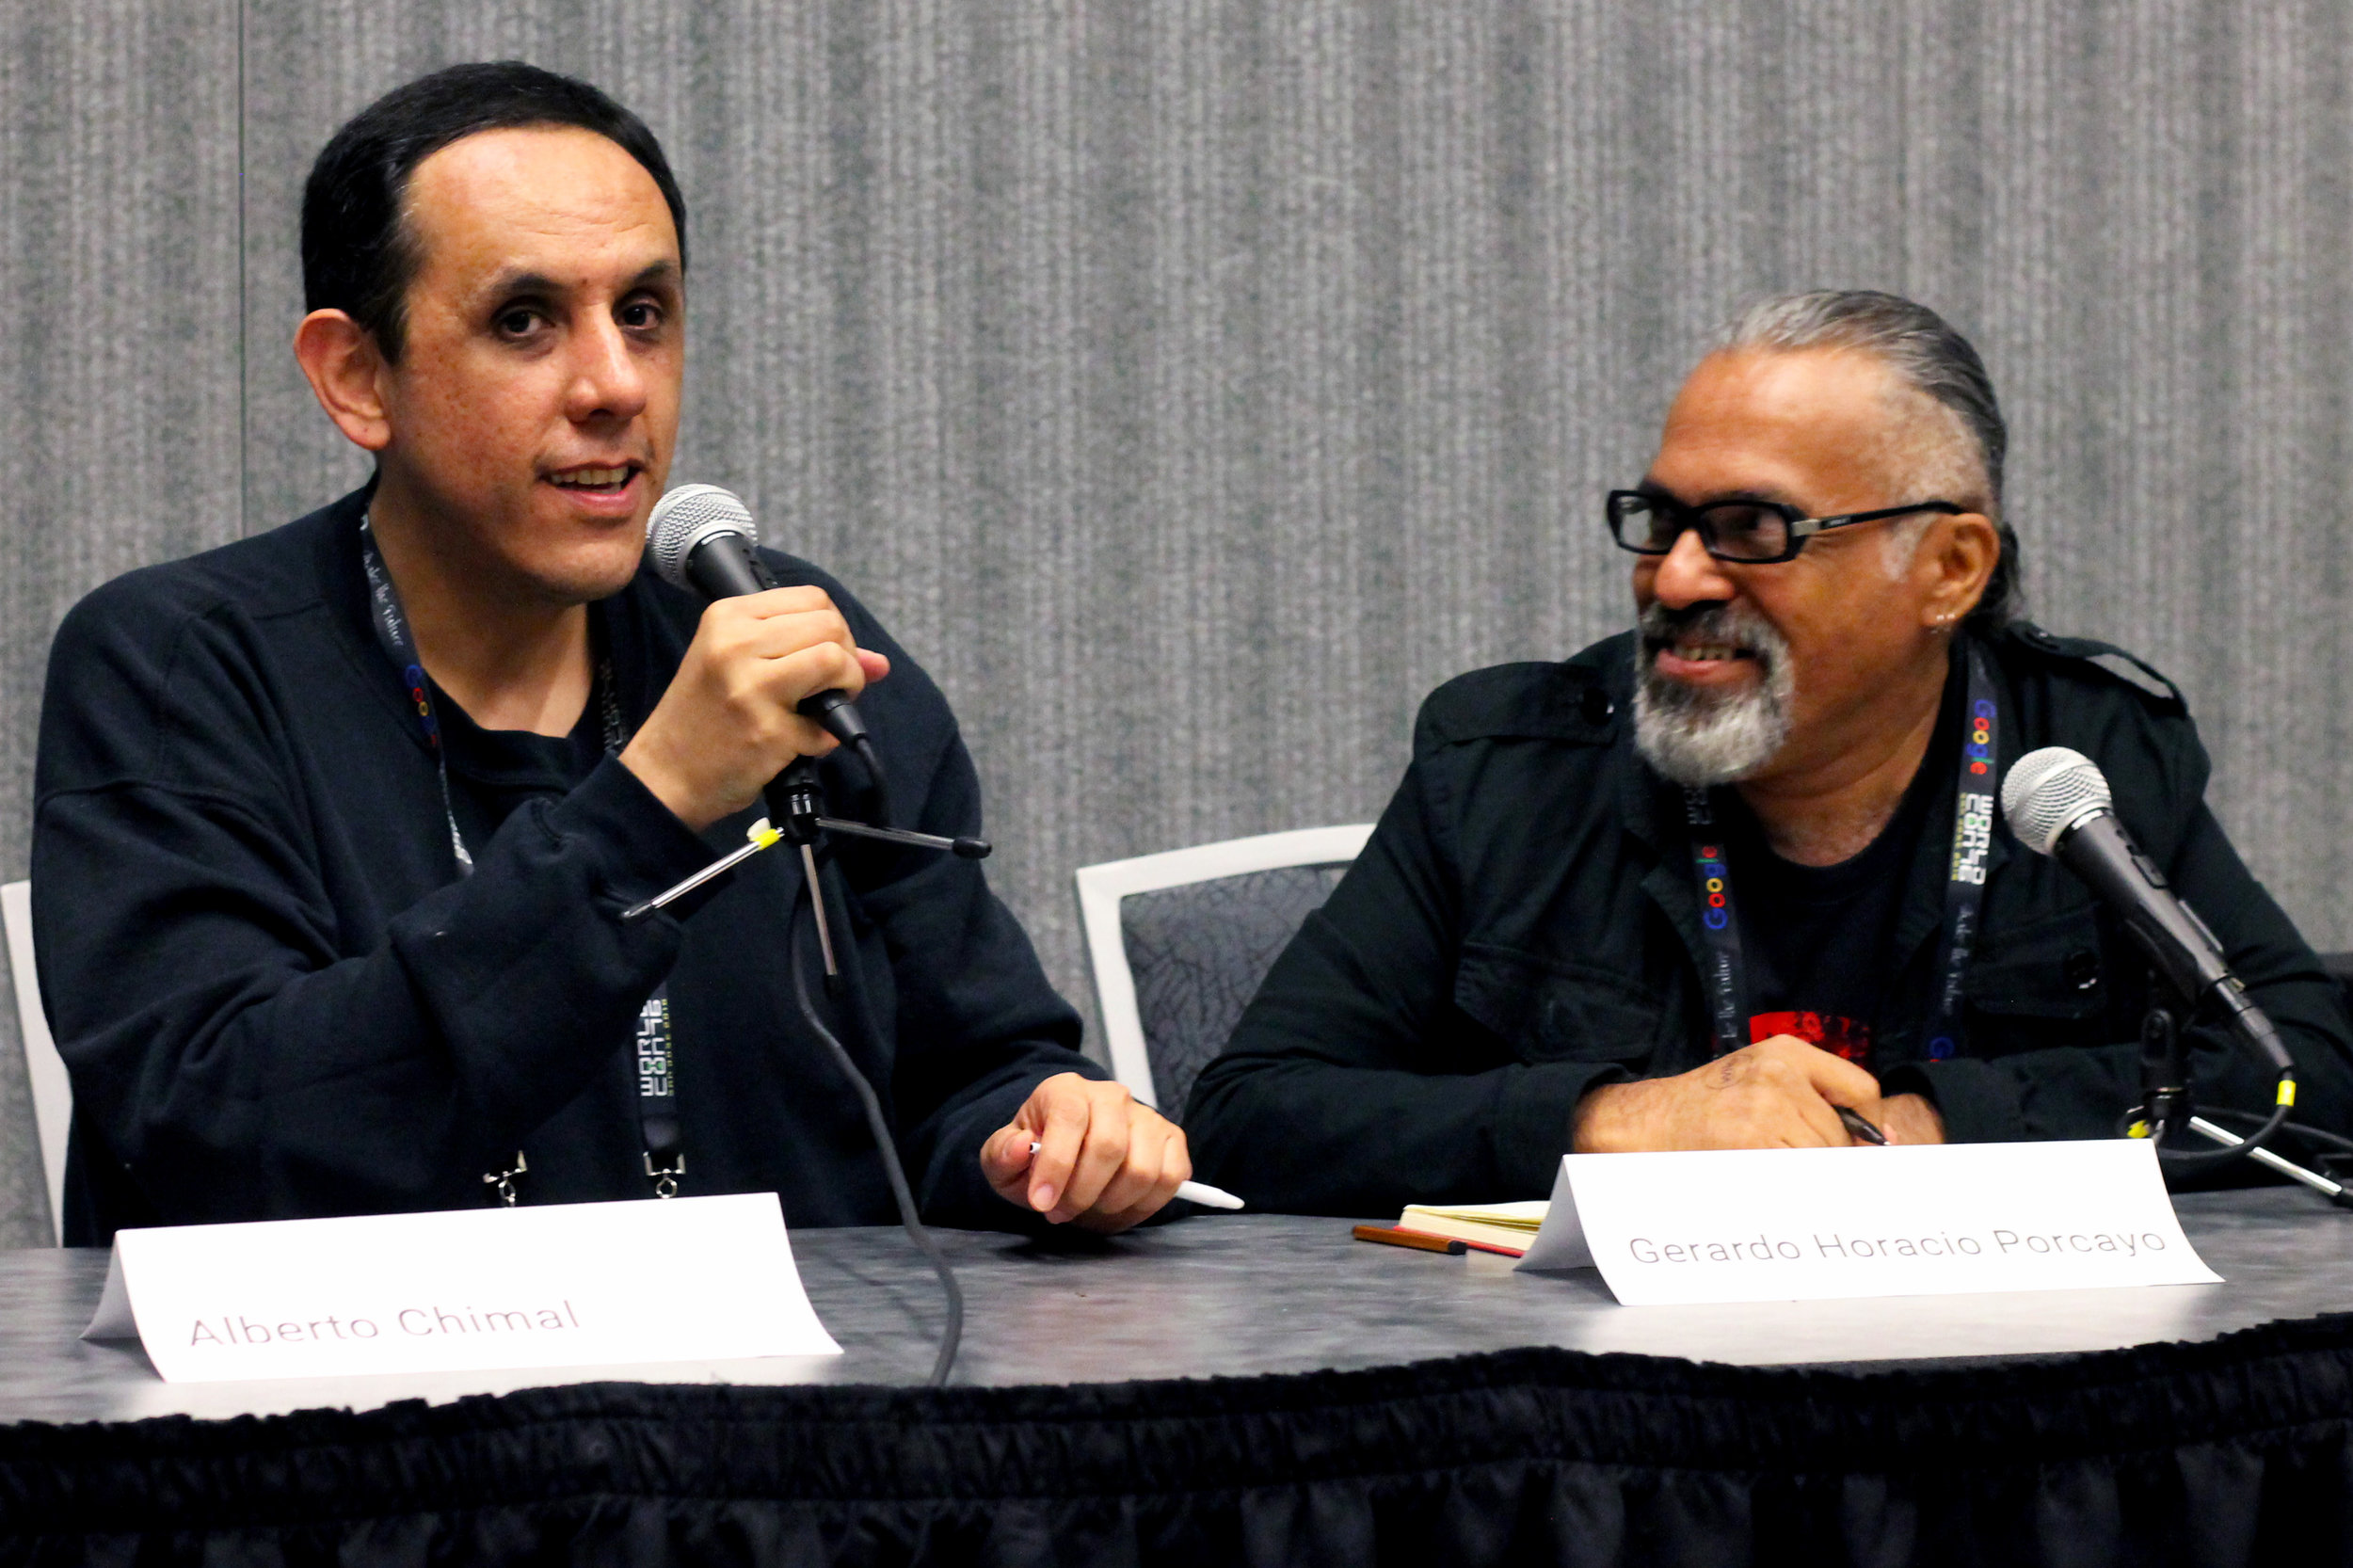 Alberto Chimal and Gerardo Horacio Porcayo at the history of Mexicanx Sci-Fi panel (Photo by Julia Rios)